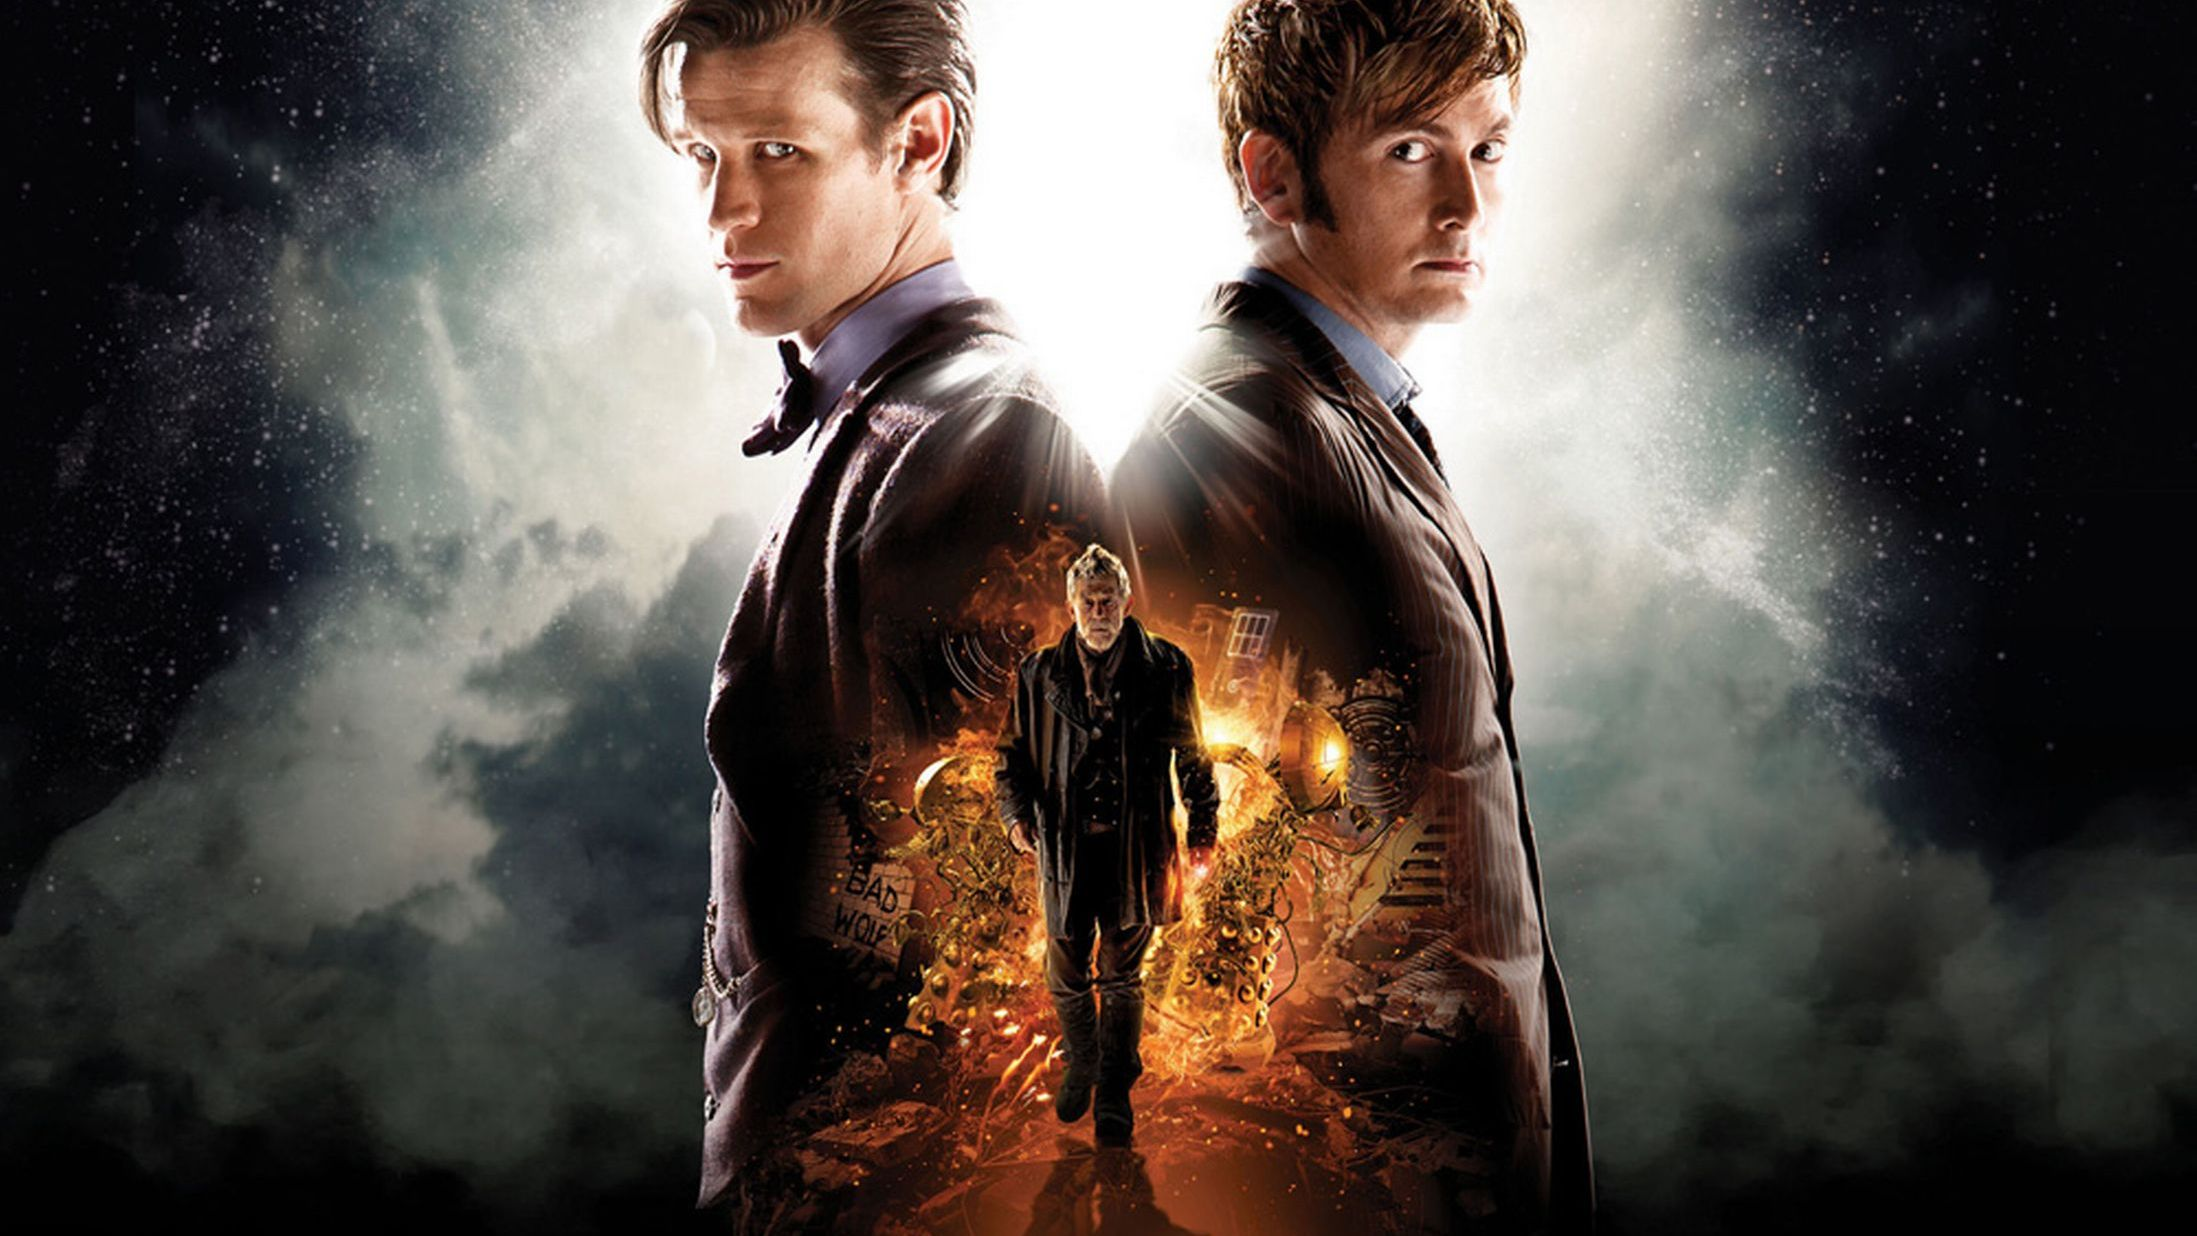 The Doctor populairste sci fi personage